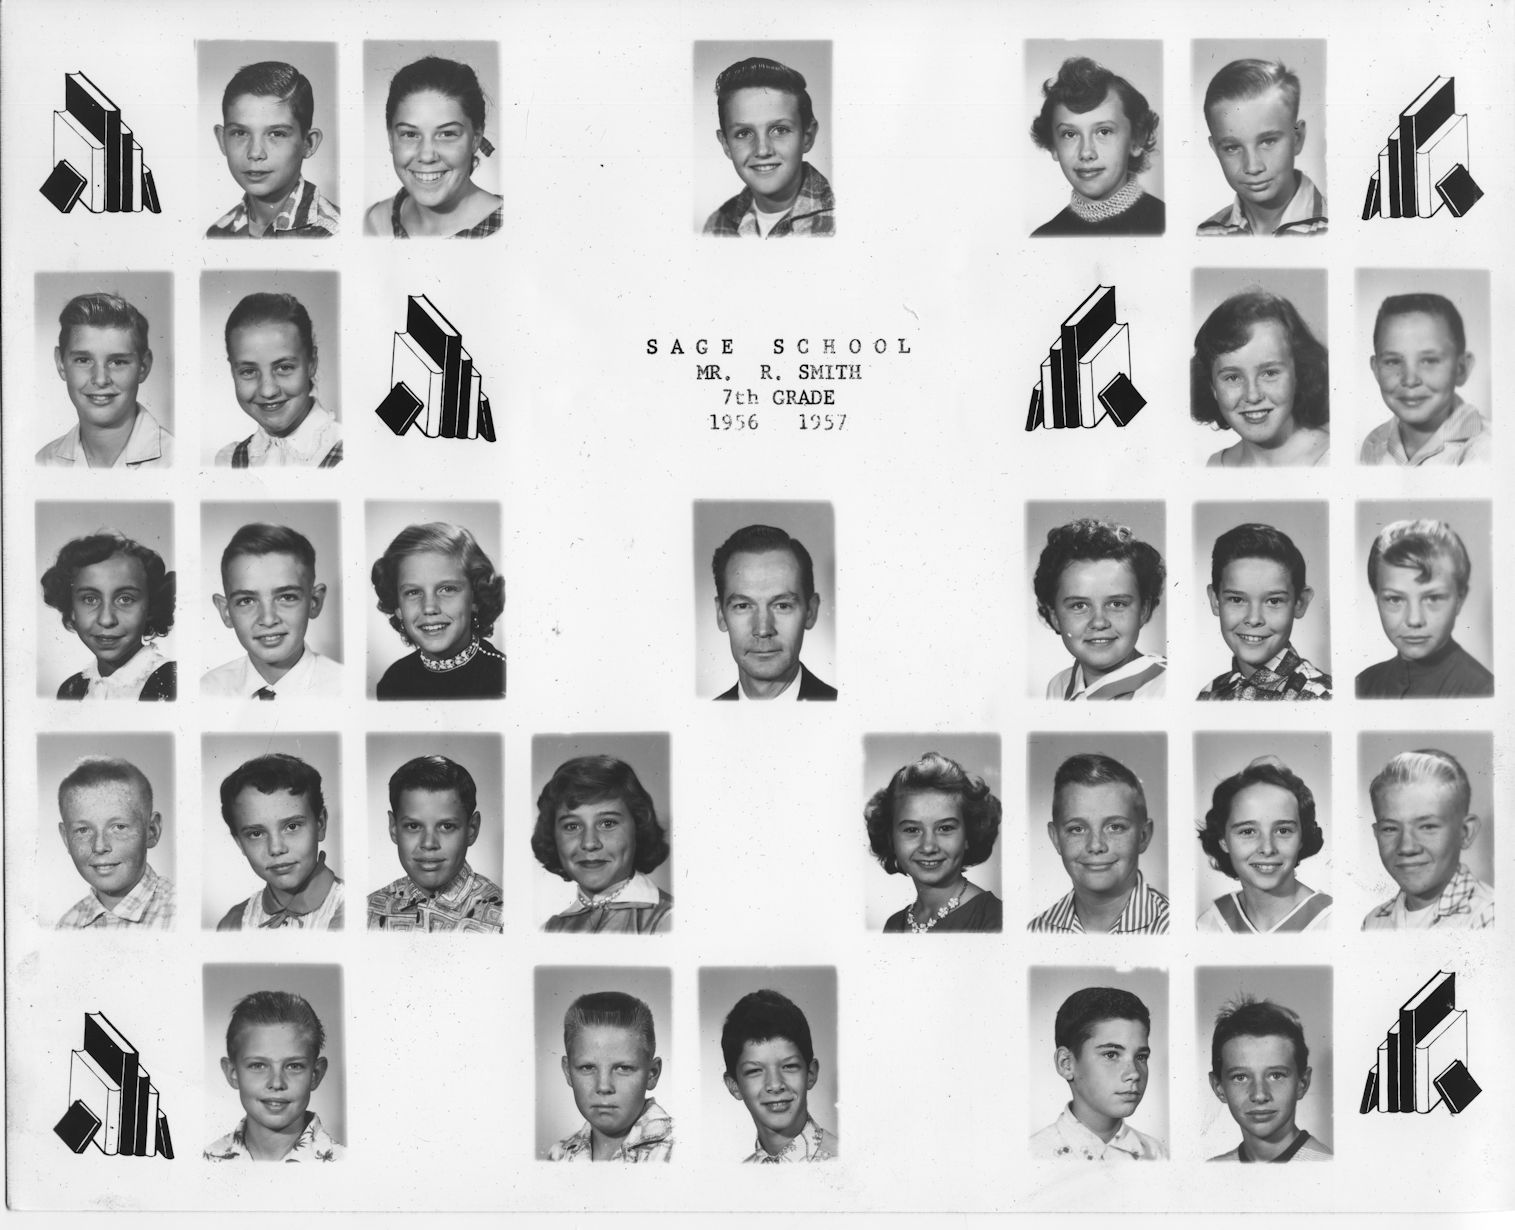 Sage School, Seventh Grade, 1956-7, Mr. Smith